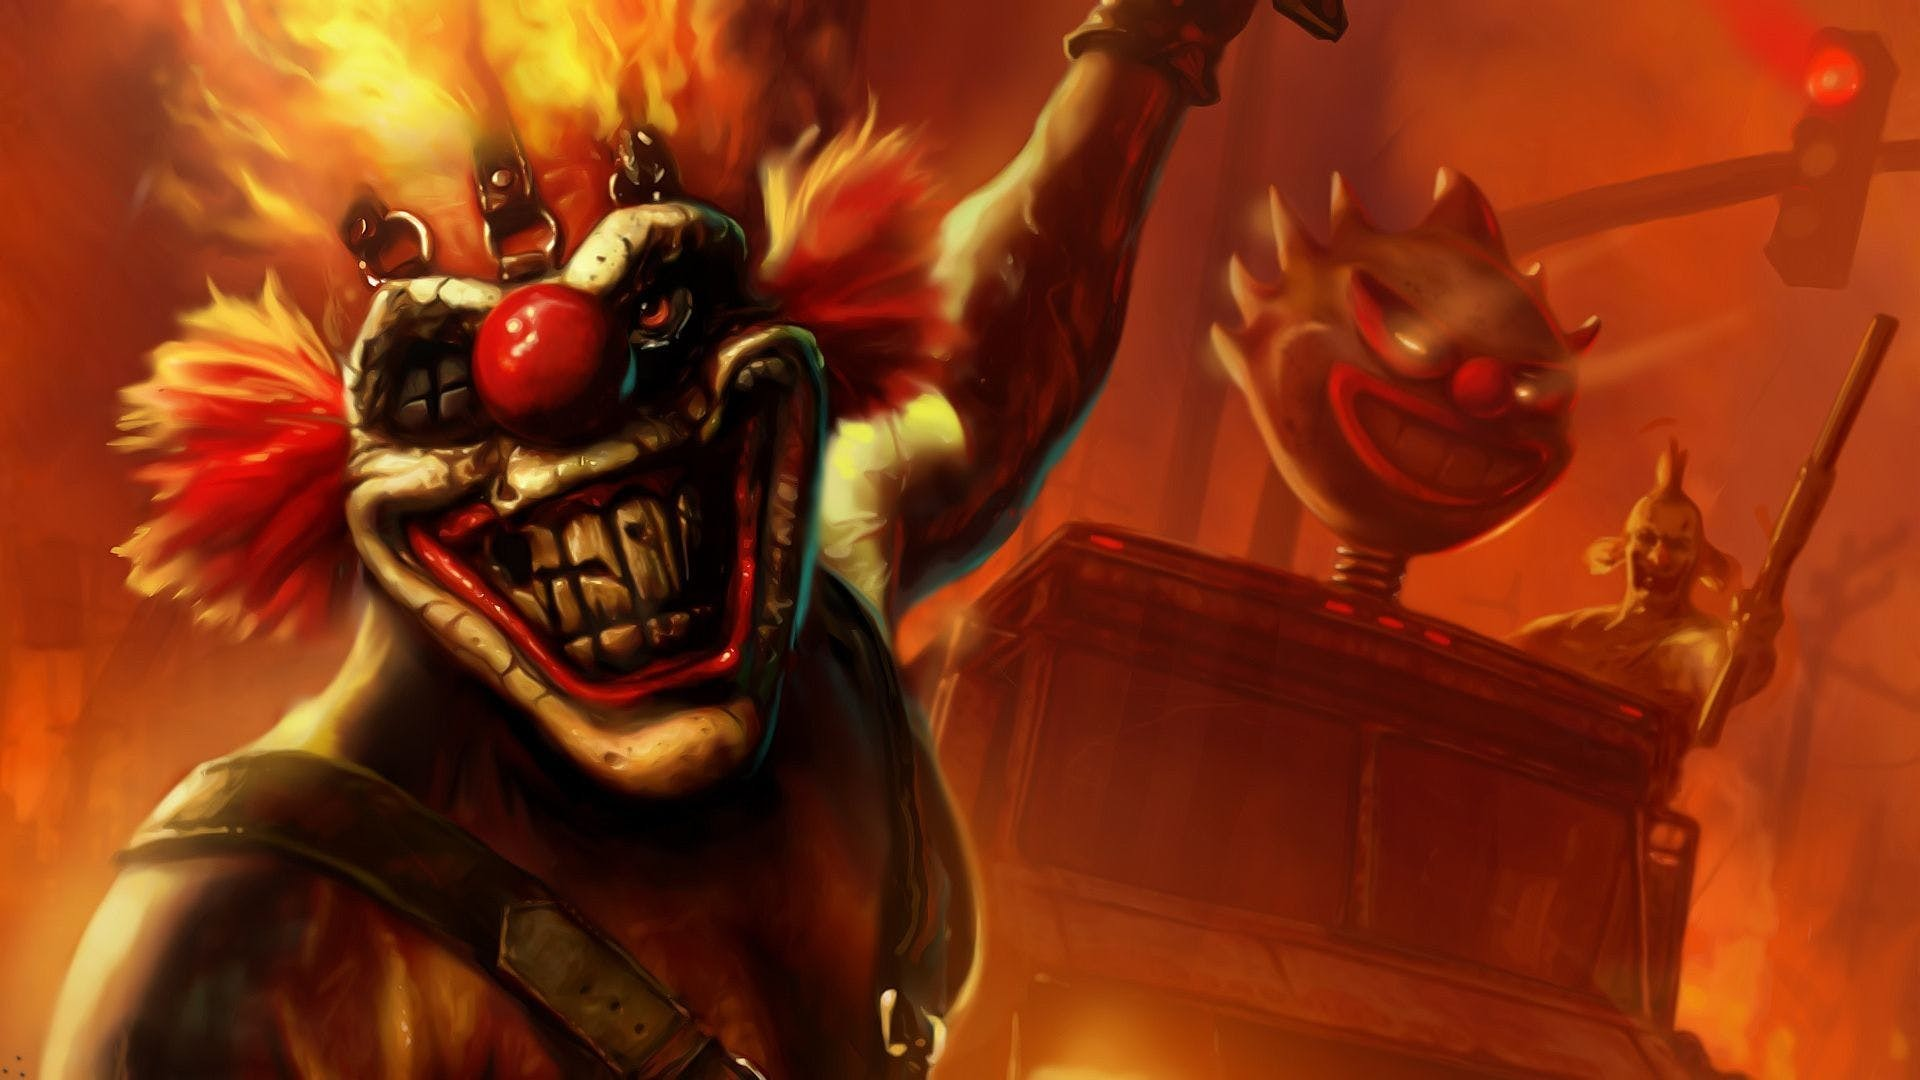 Twisted Metal Wallpaper HD (66+ images)